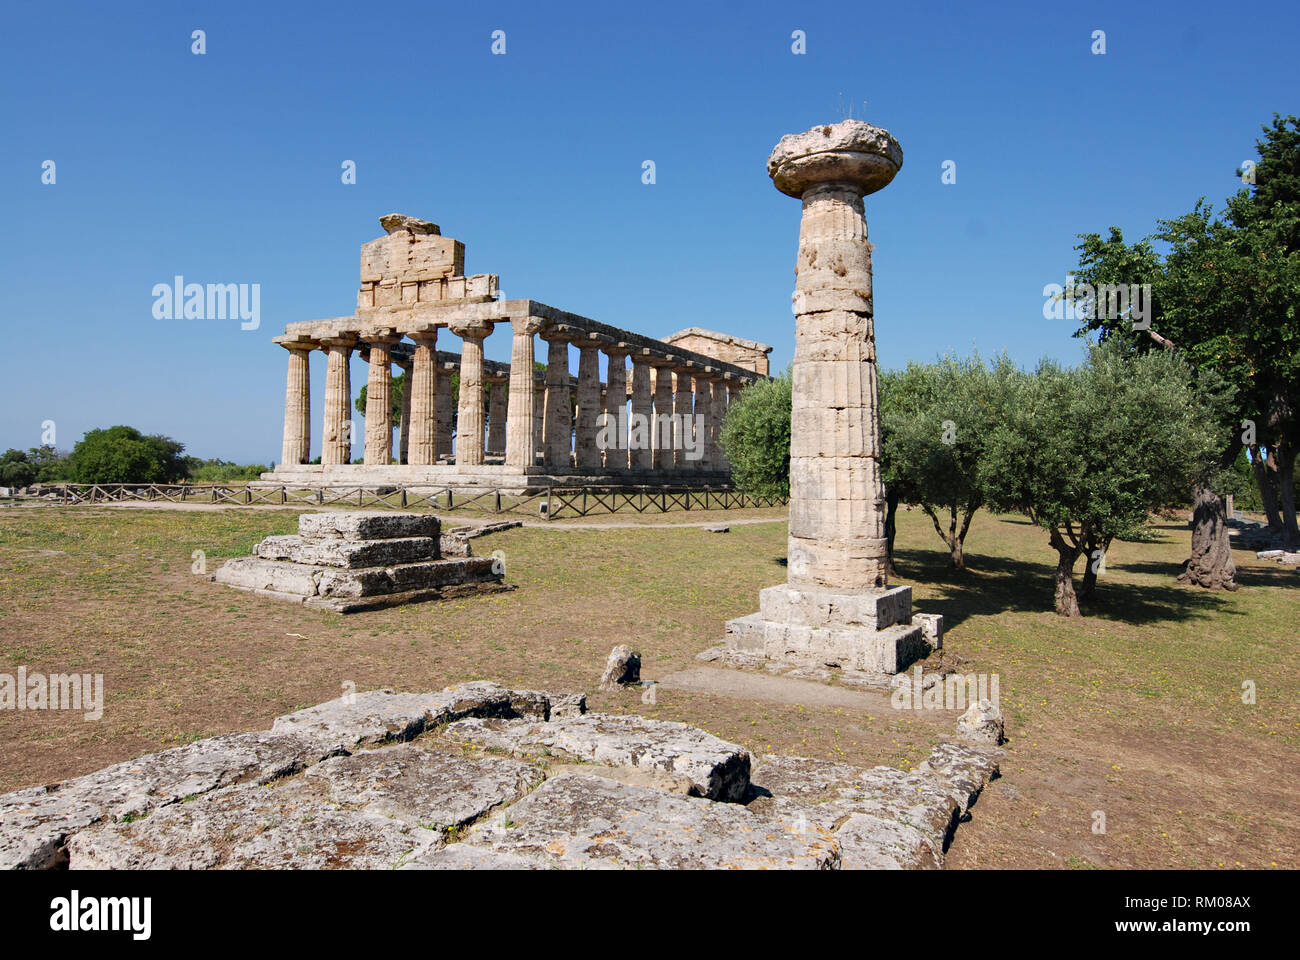 temple of cerere in archaeological site of Paestum great greece salerno italy 2018 - Stock Image